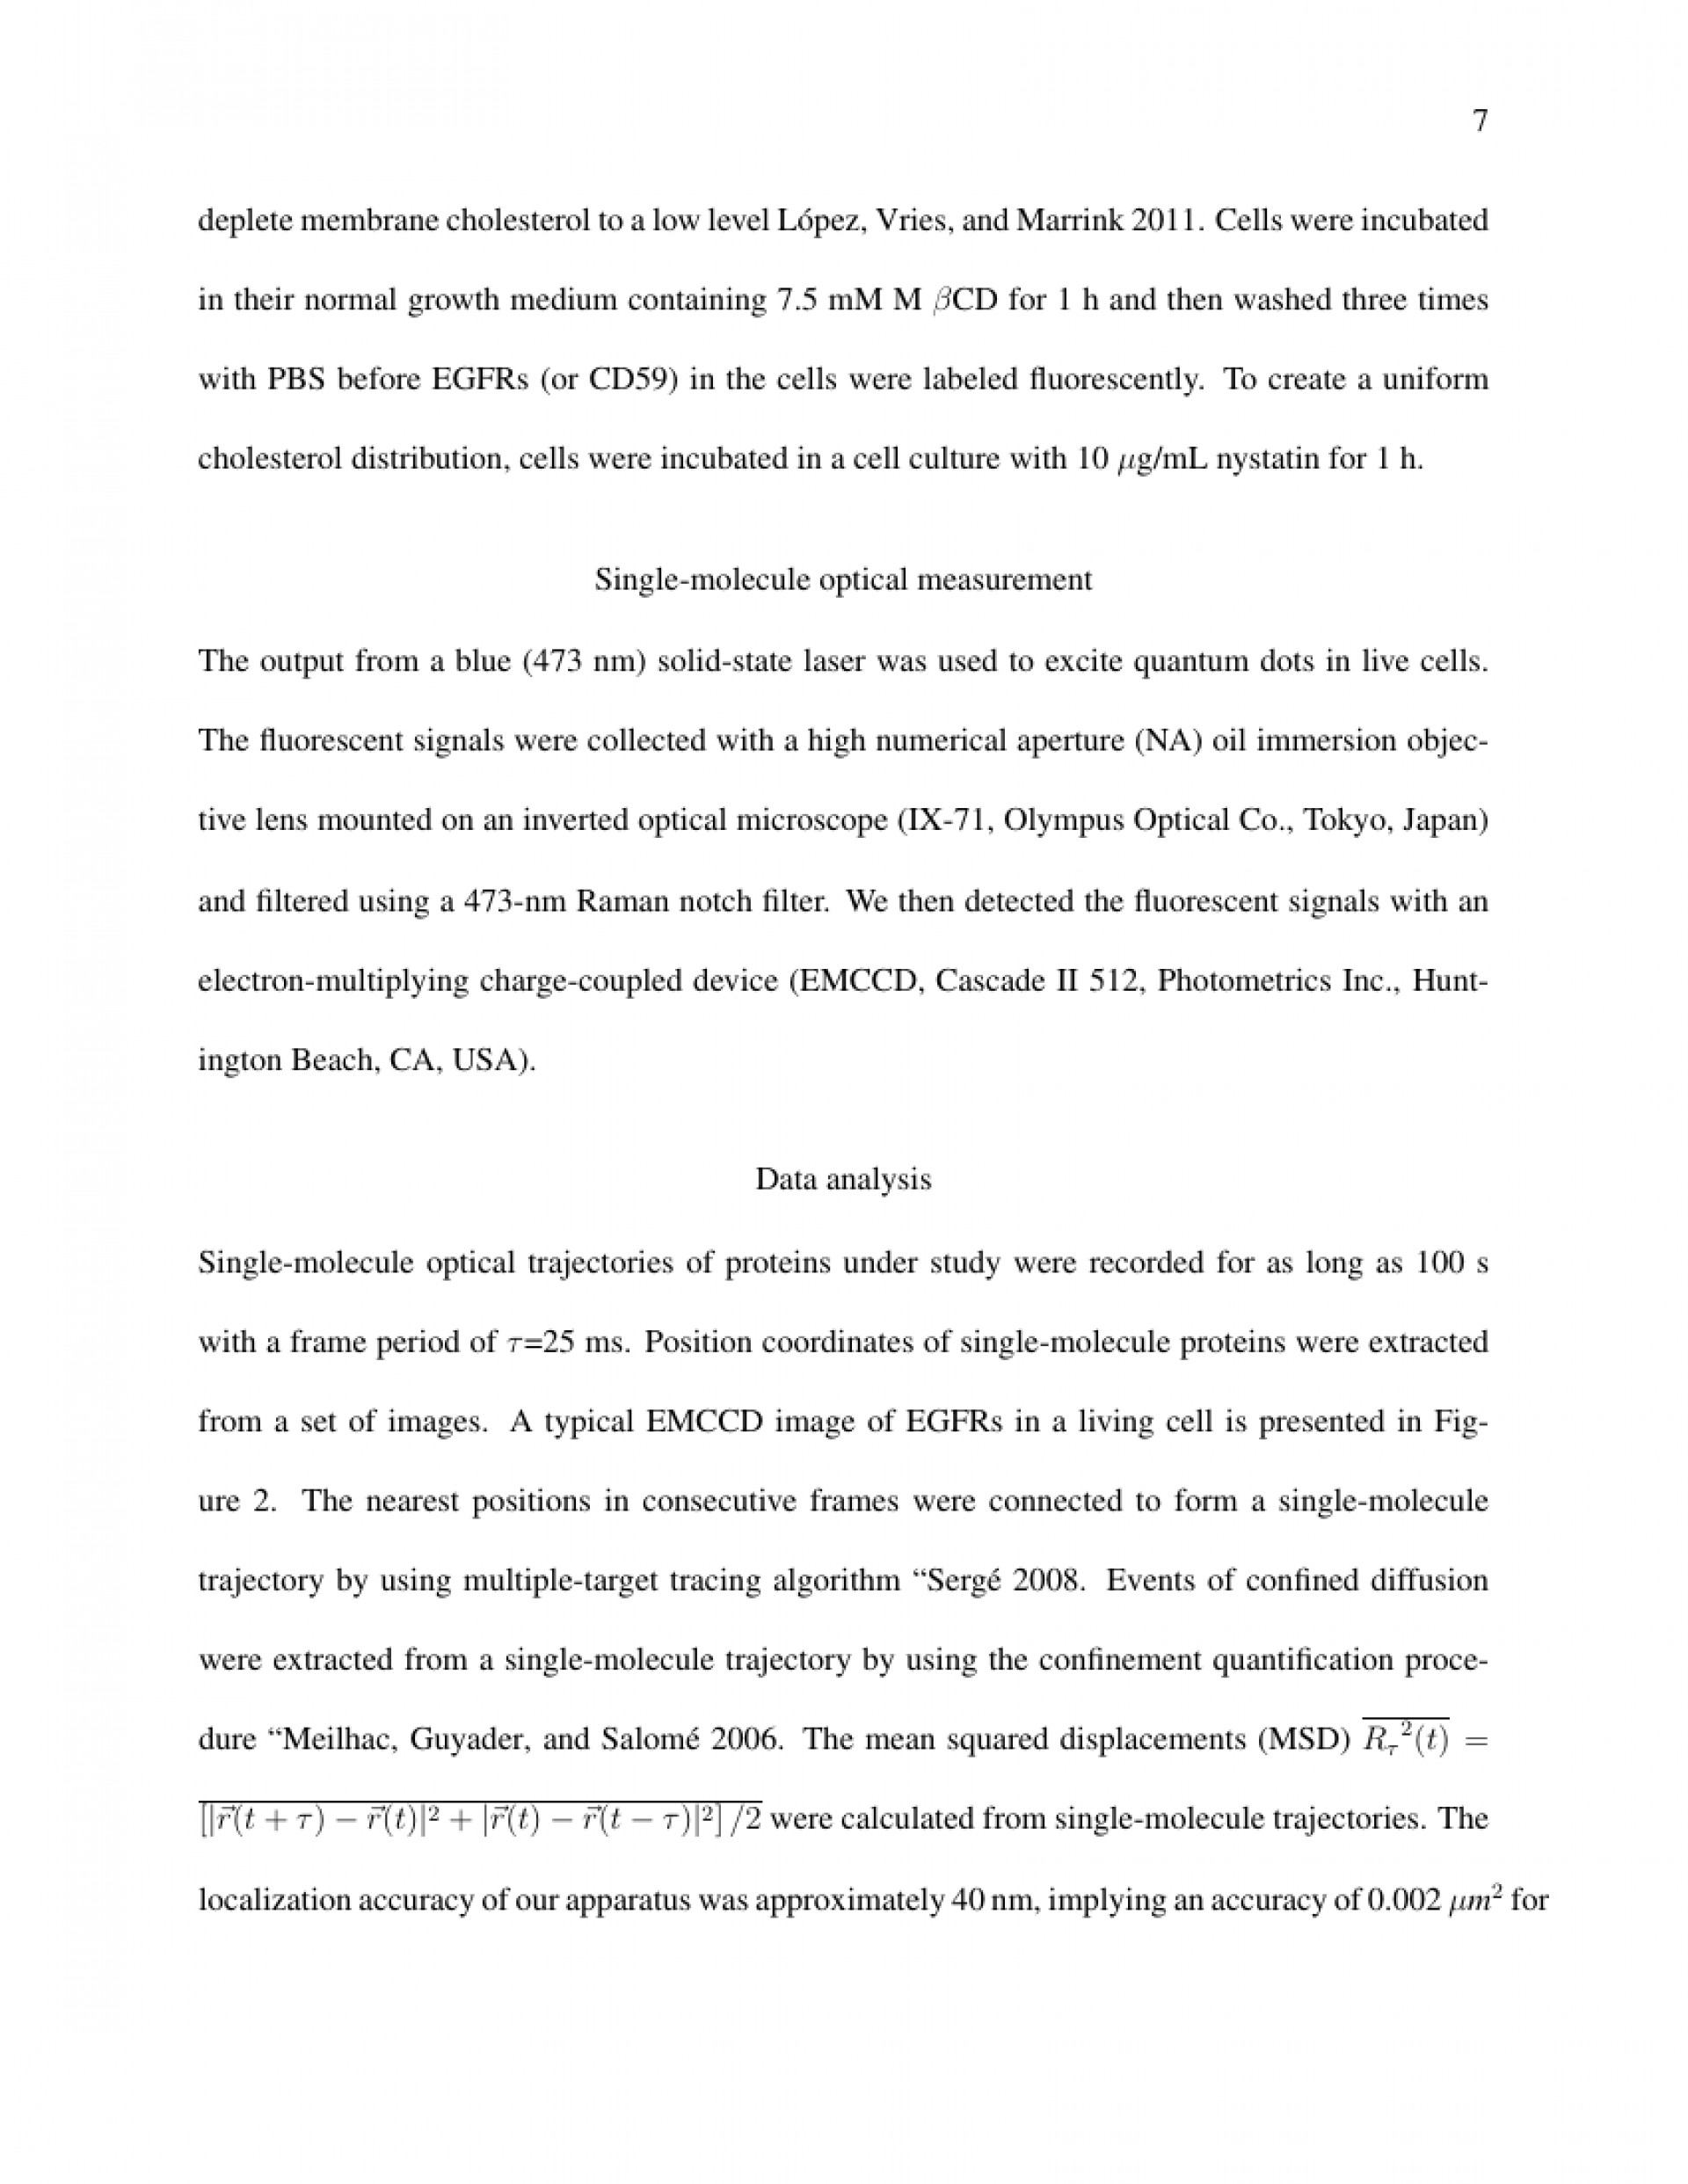 003 Article Format For Researchs Impressive Research Papers Outline Example Paper Apa Style 1920